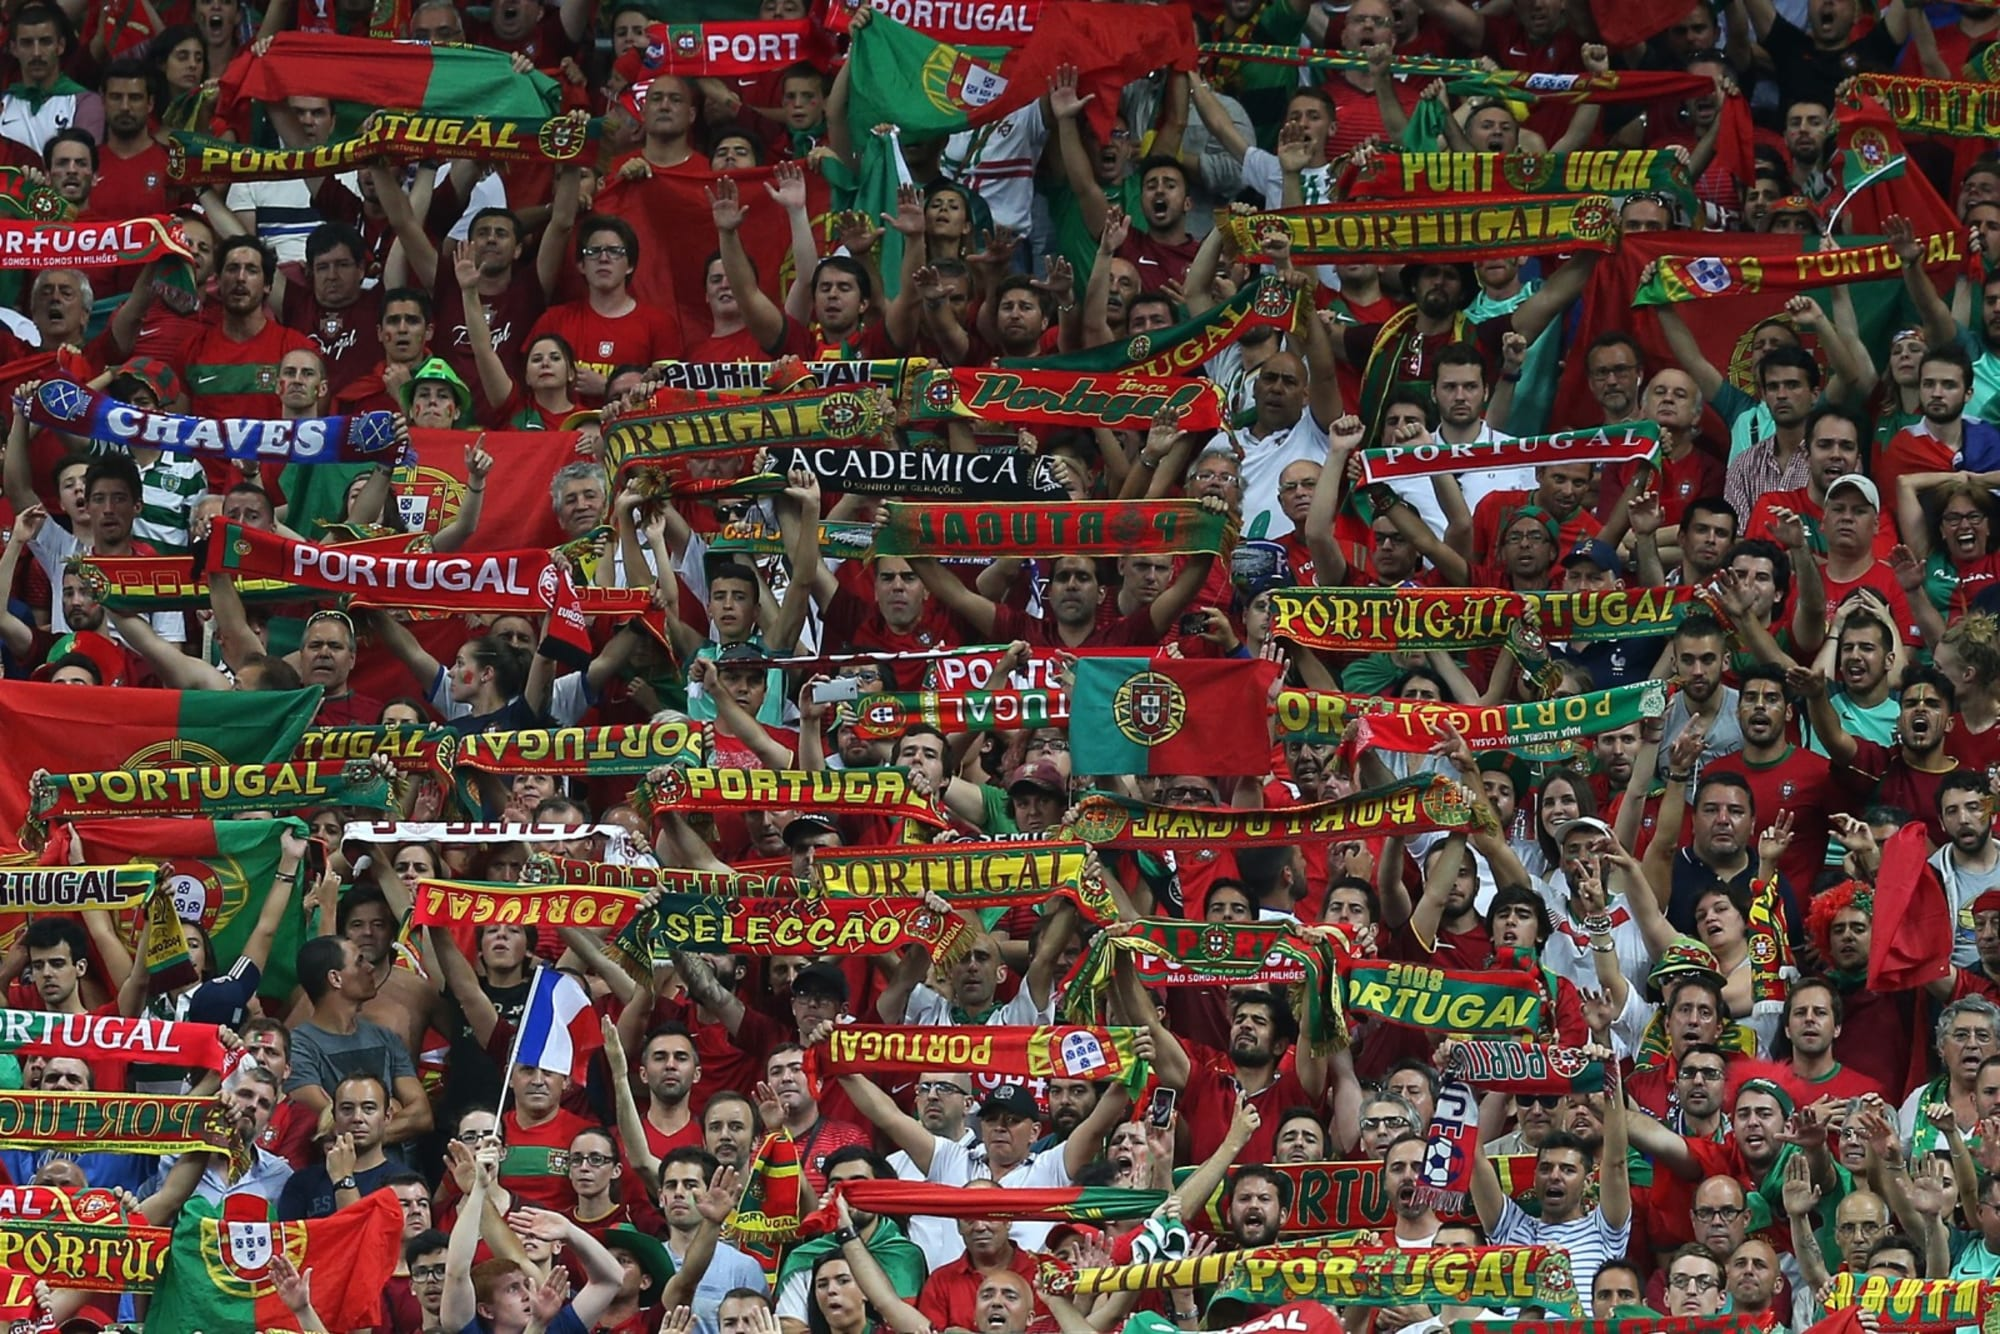 Euro in for a treat: National team tournament to feature fans